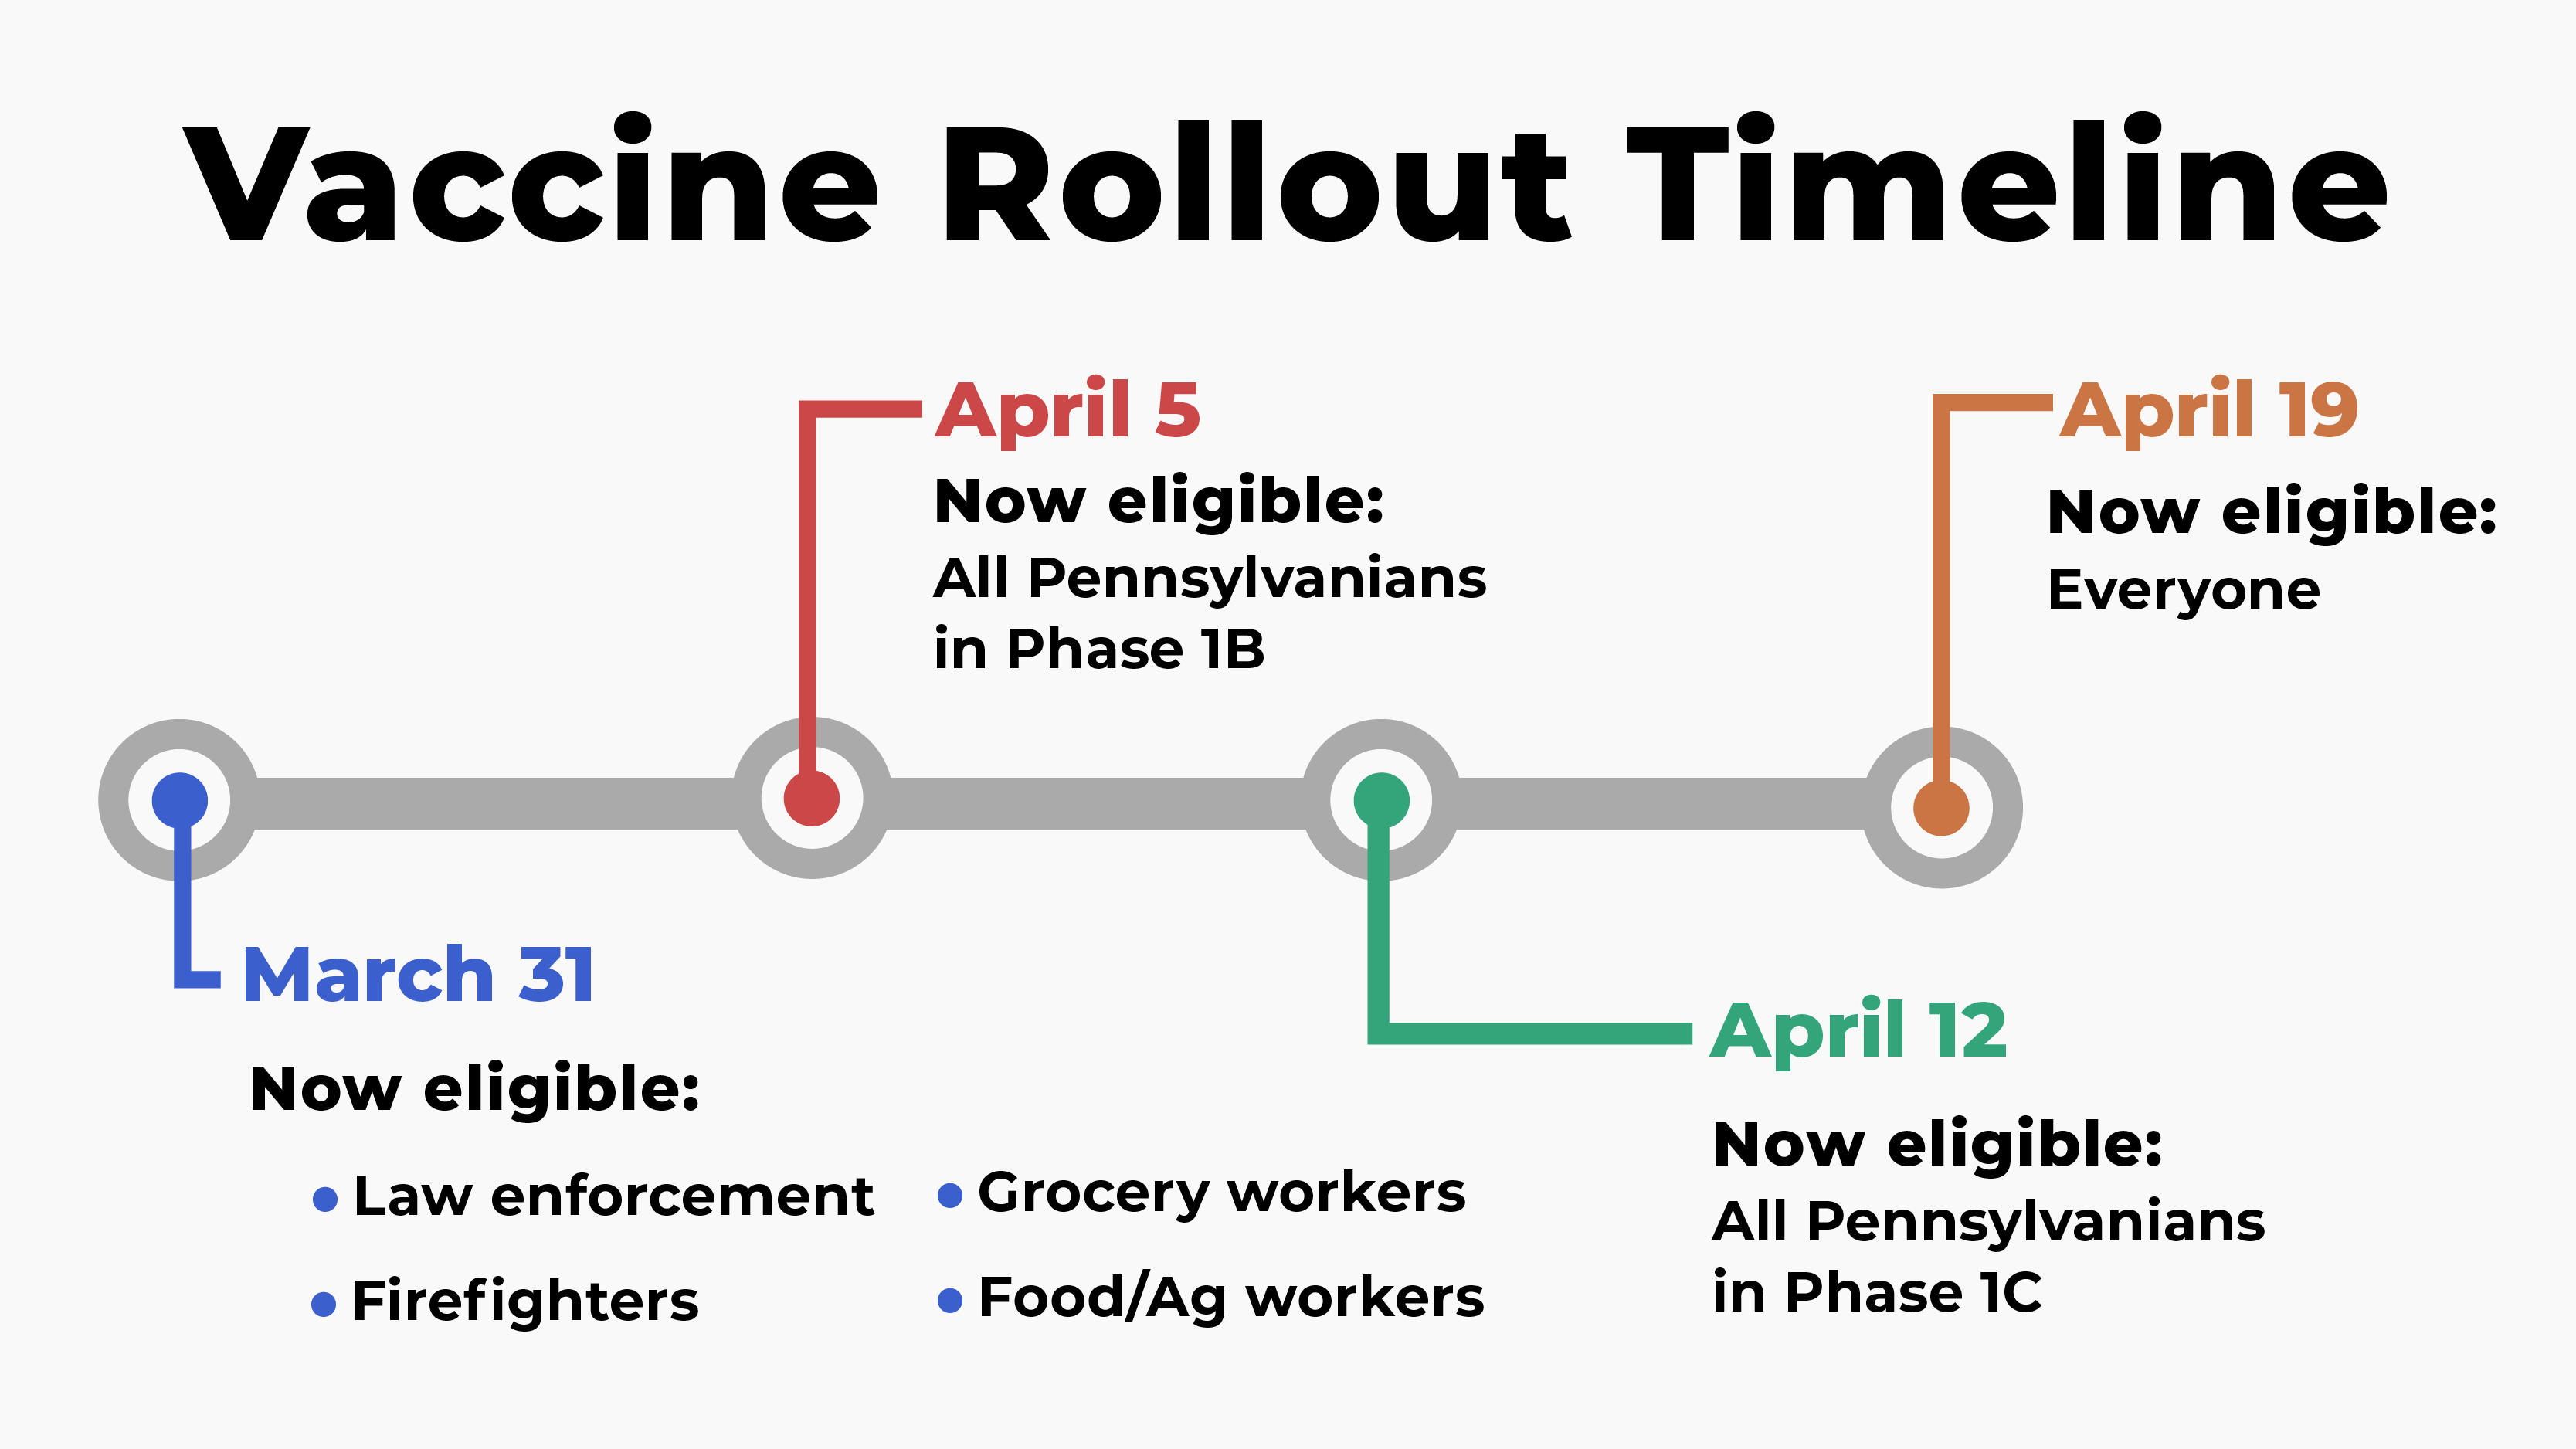 Timeline showing that all Pennsylvanians will be eligible for vaccine by April 19